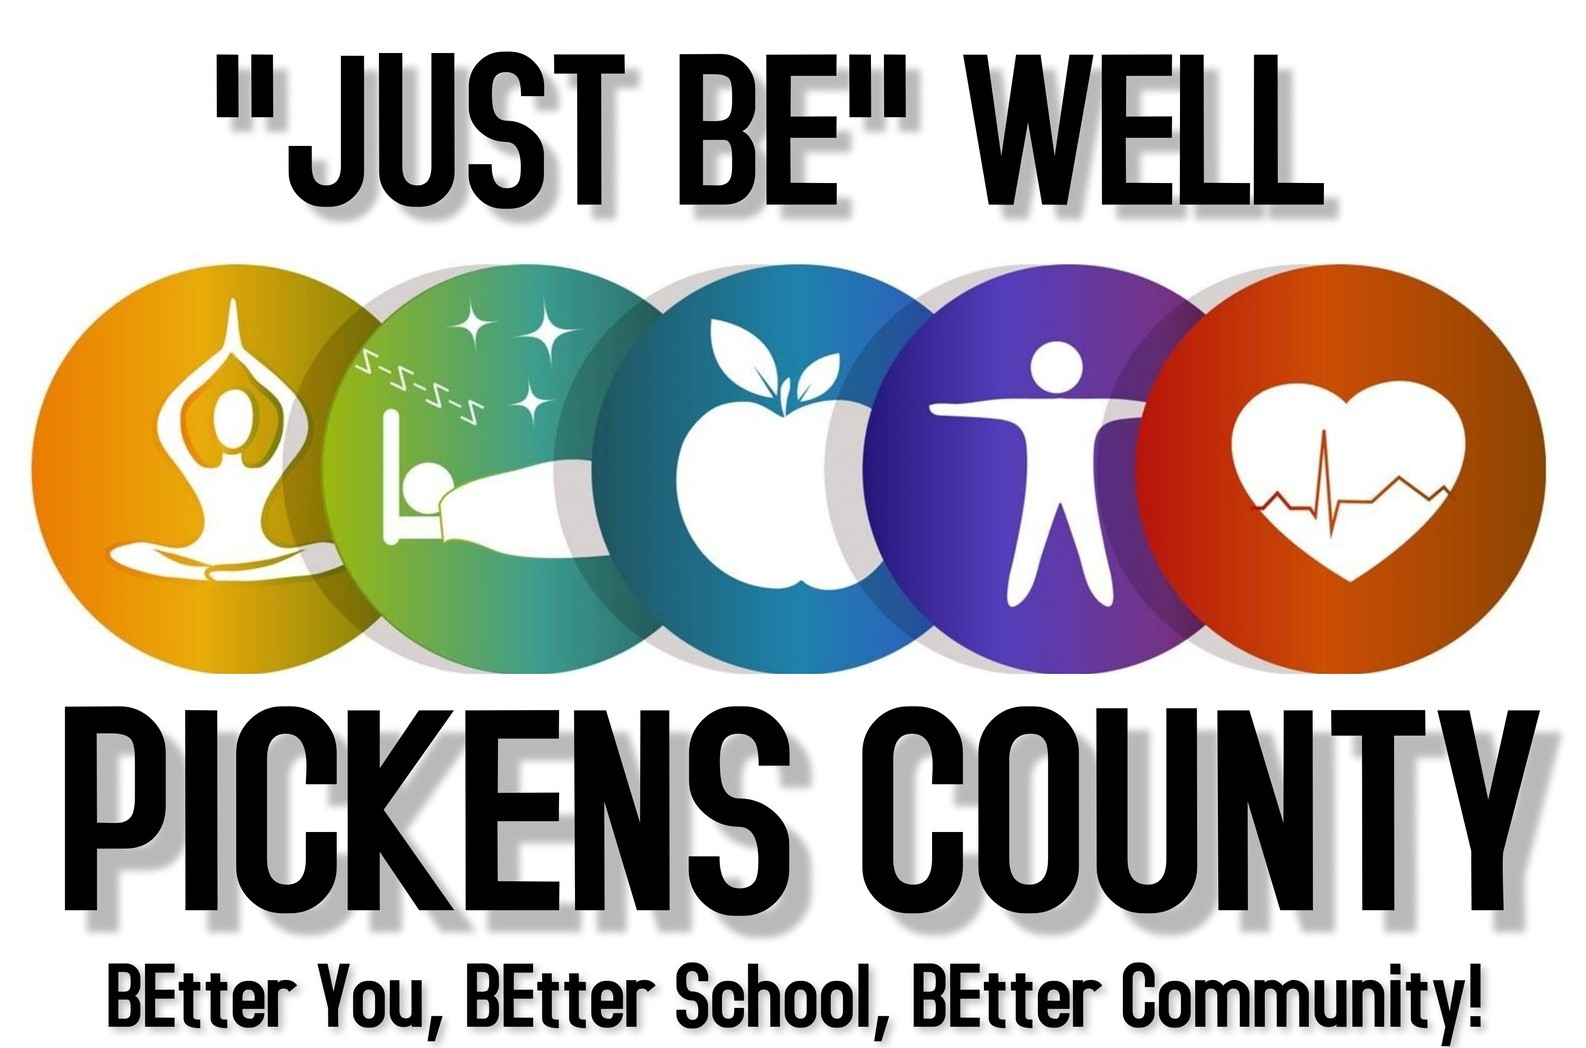 Just Be Well Pickens County